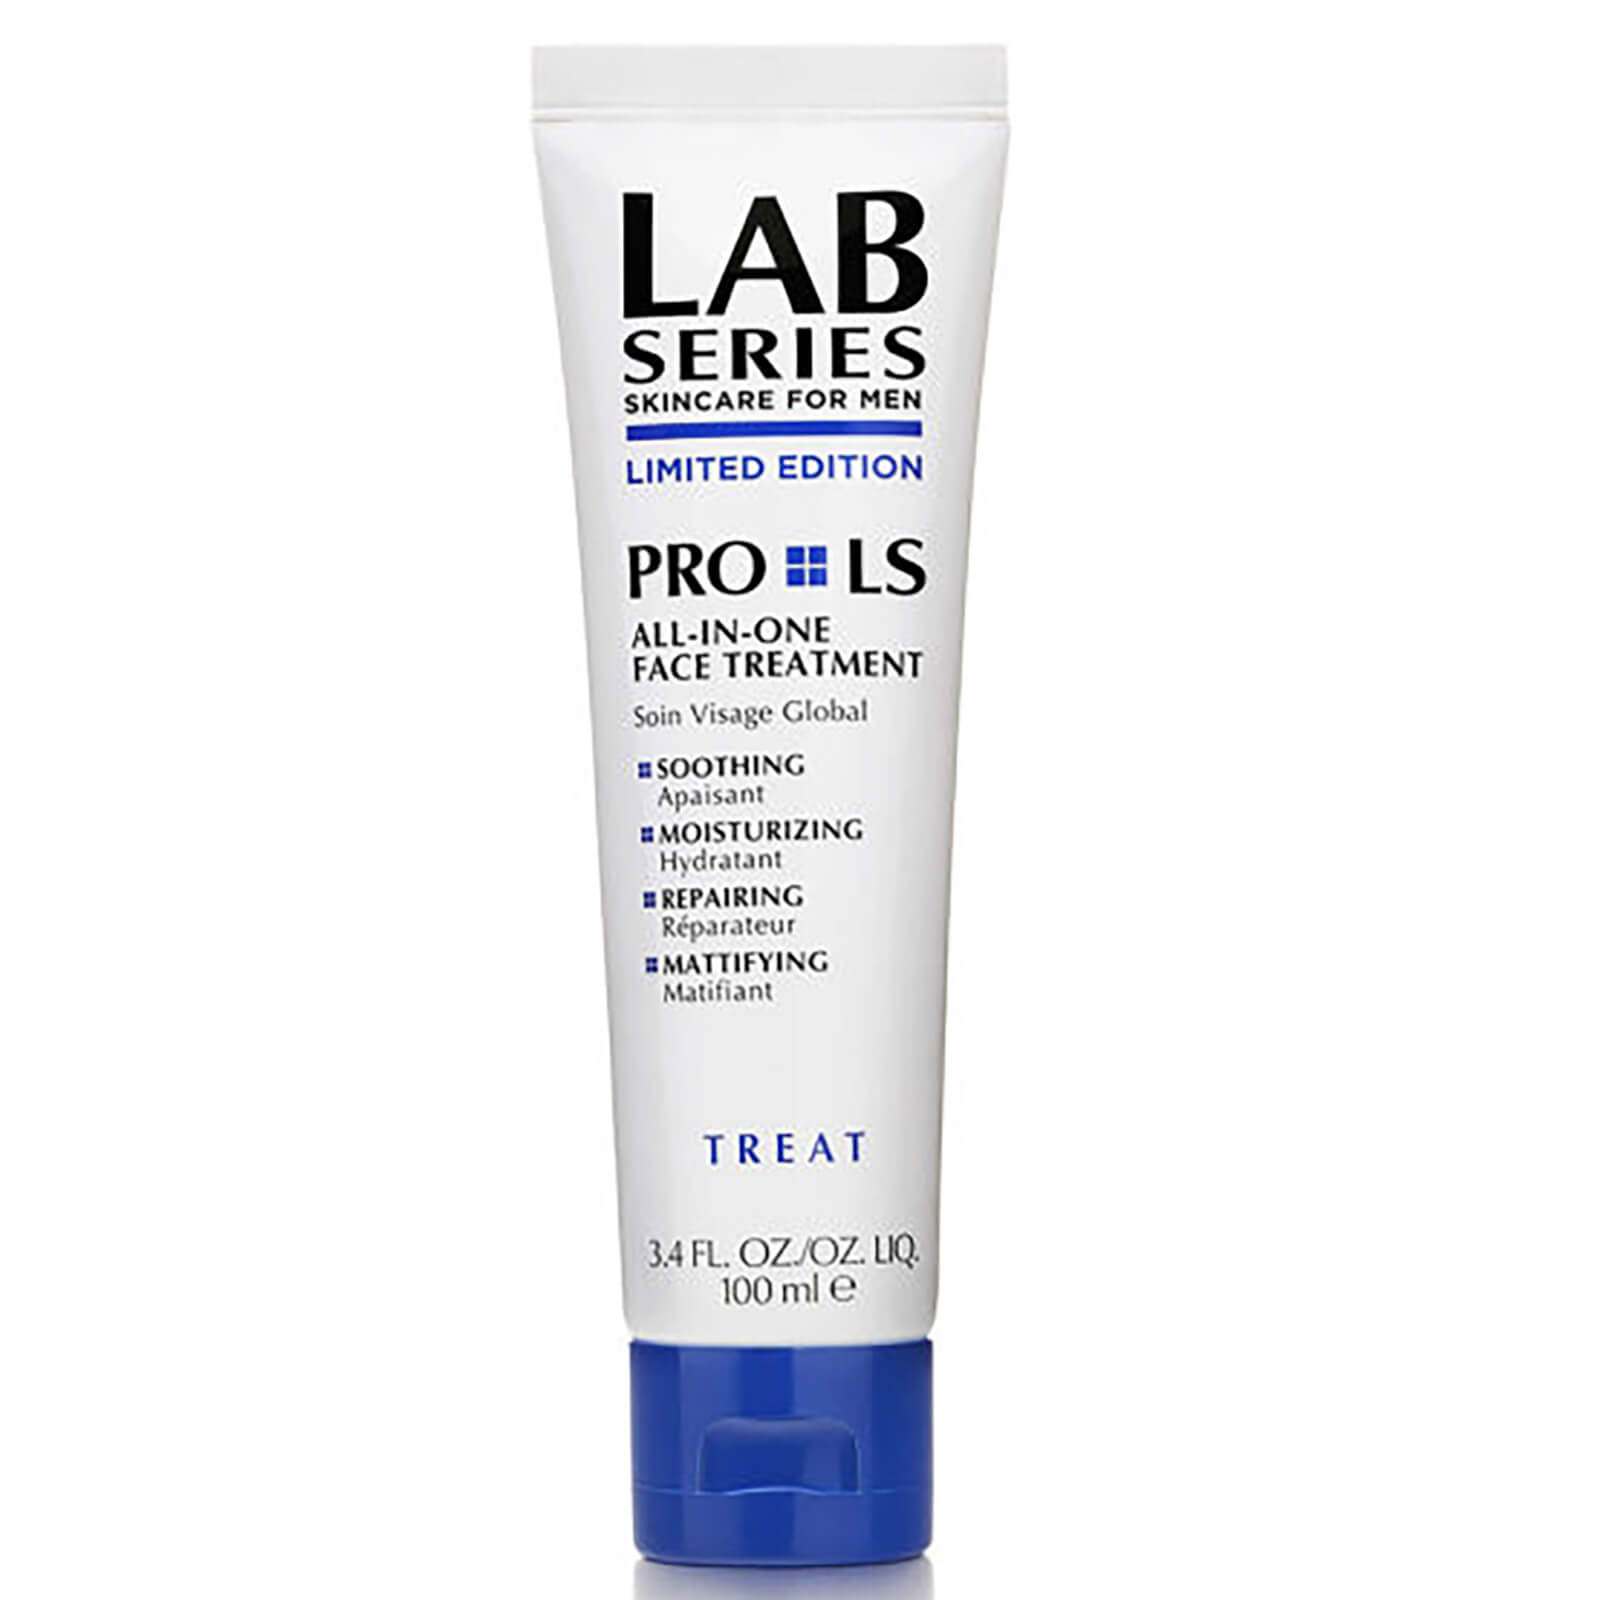 Lab Series Skincare for Men Pro LS All-in-One Face Treatment (100ml) | Free Shipping | Lookfantastic